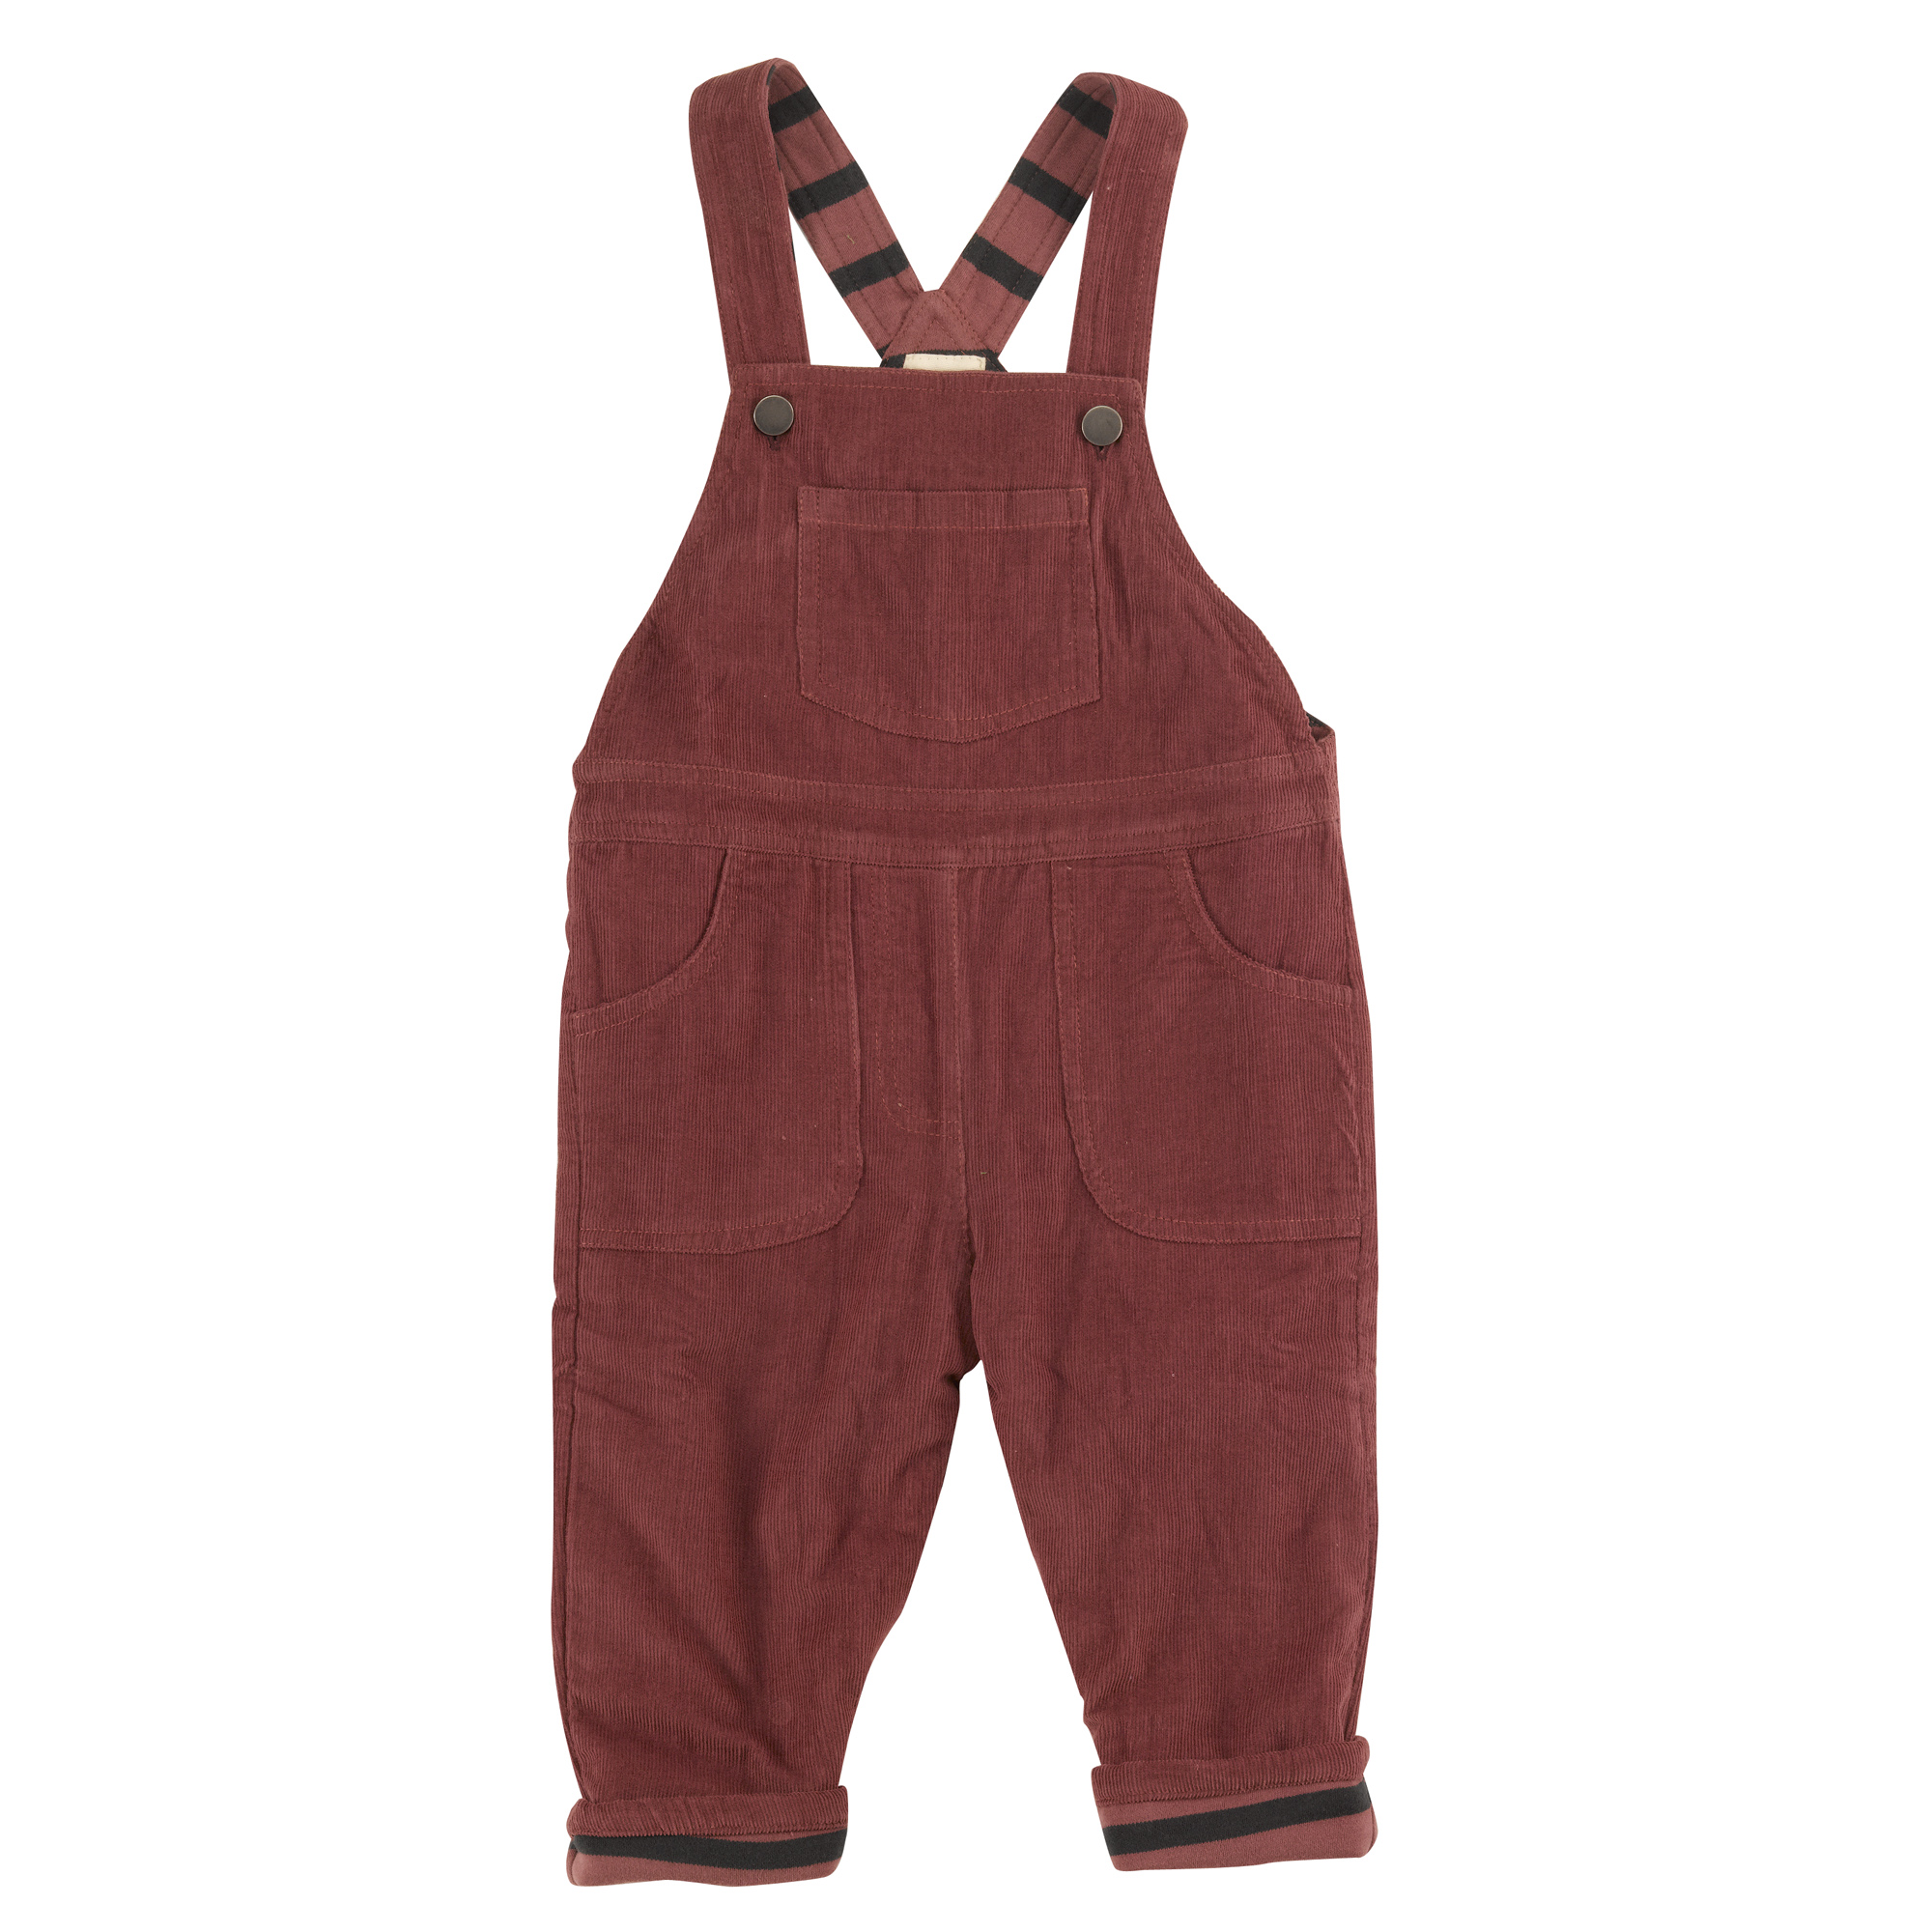 Pigeon - Lined dungarees, spice,